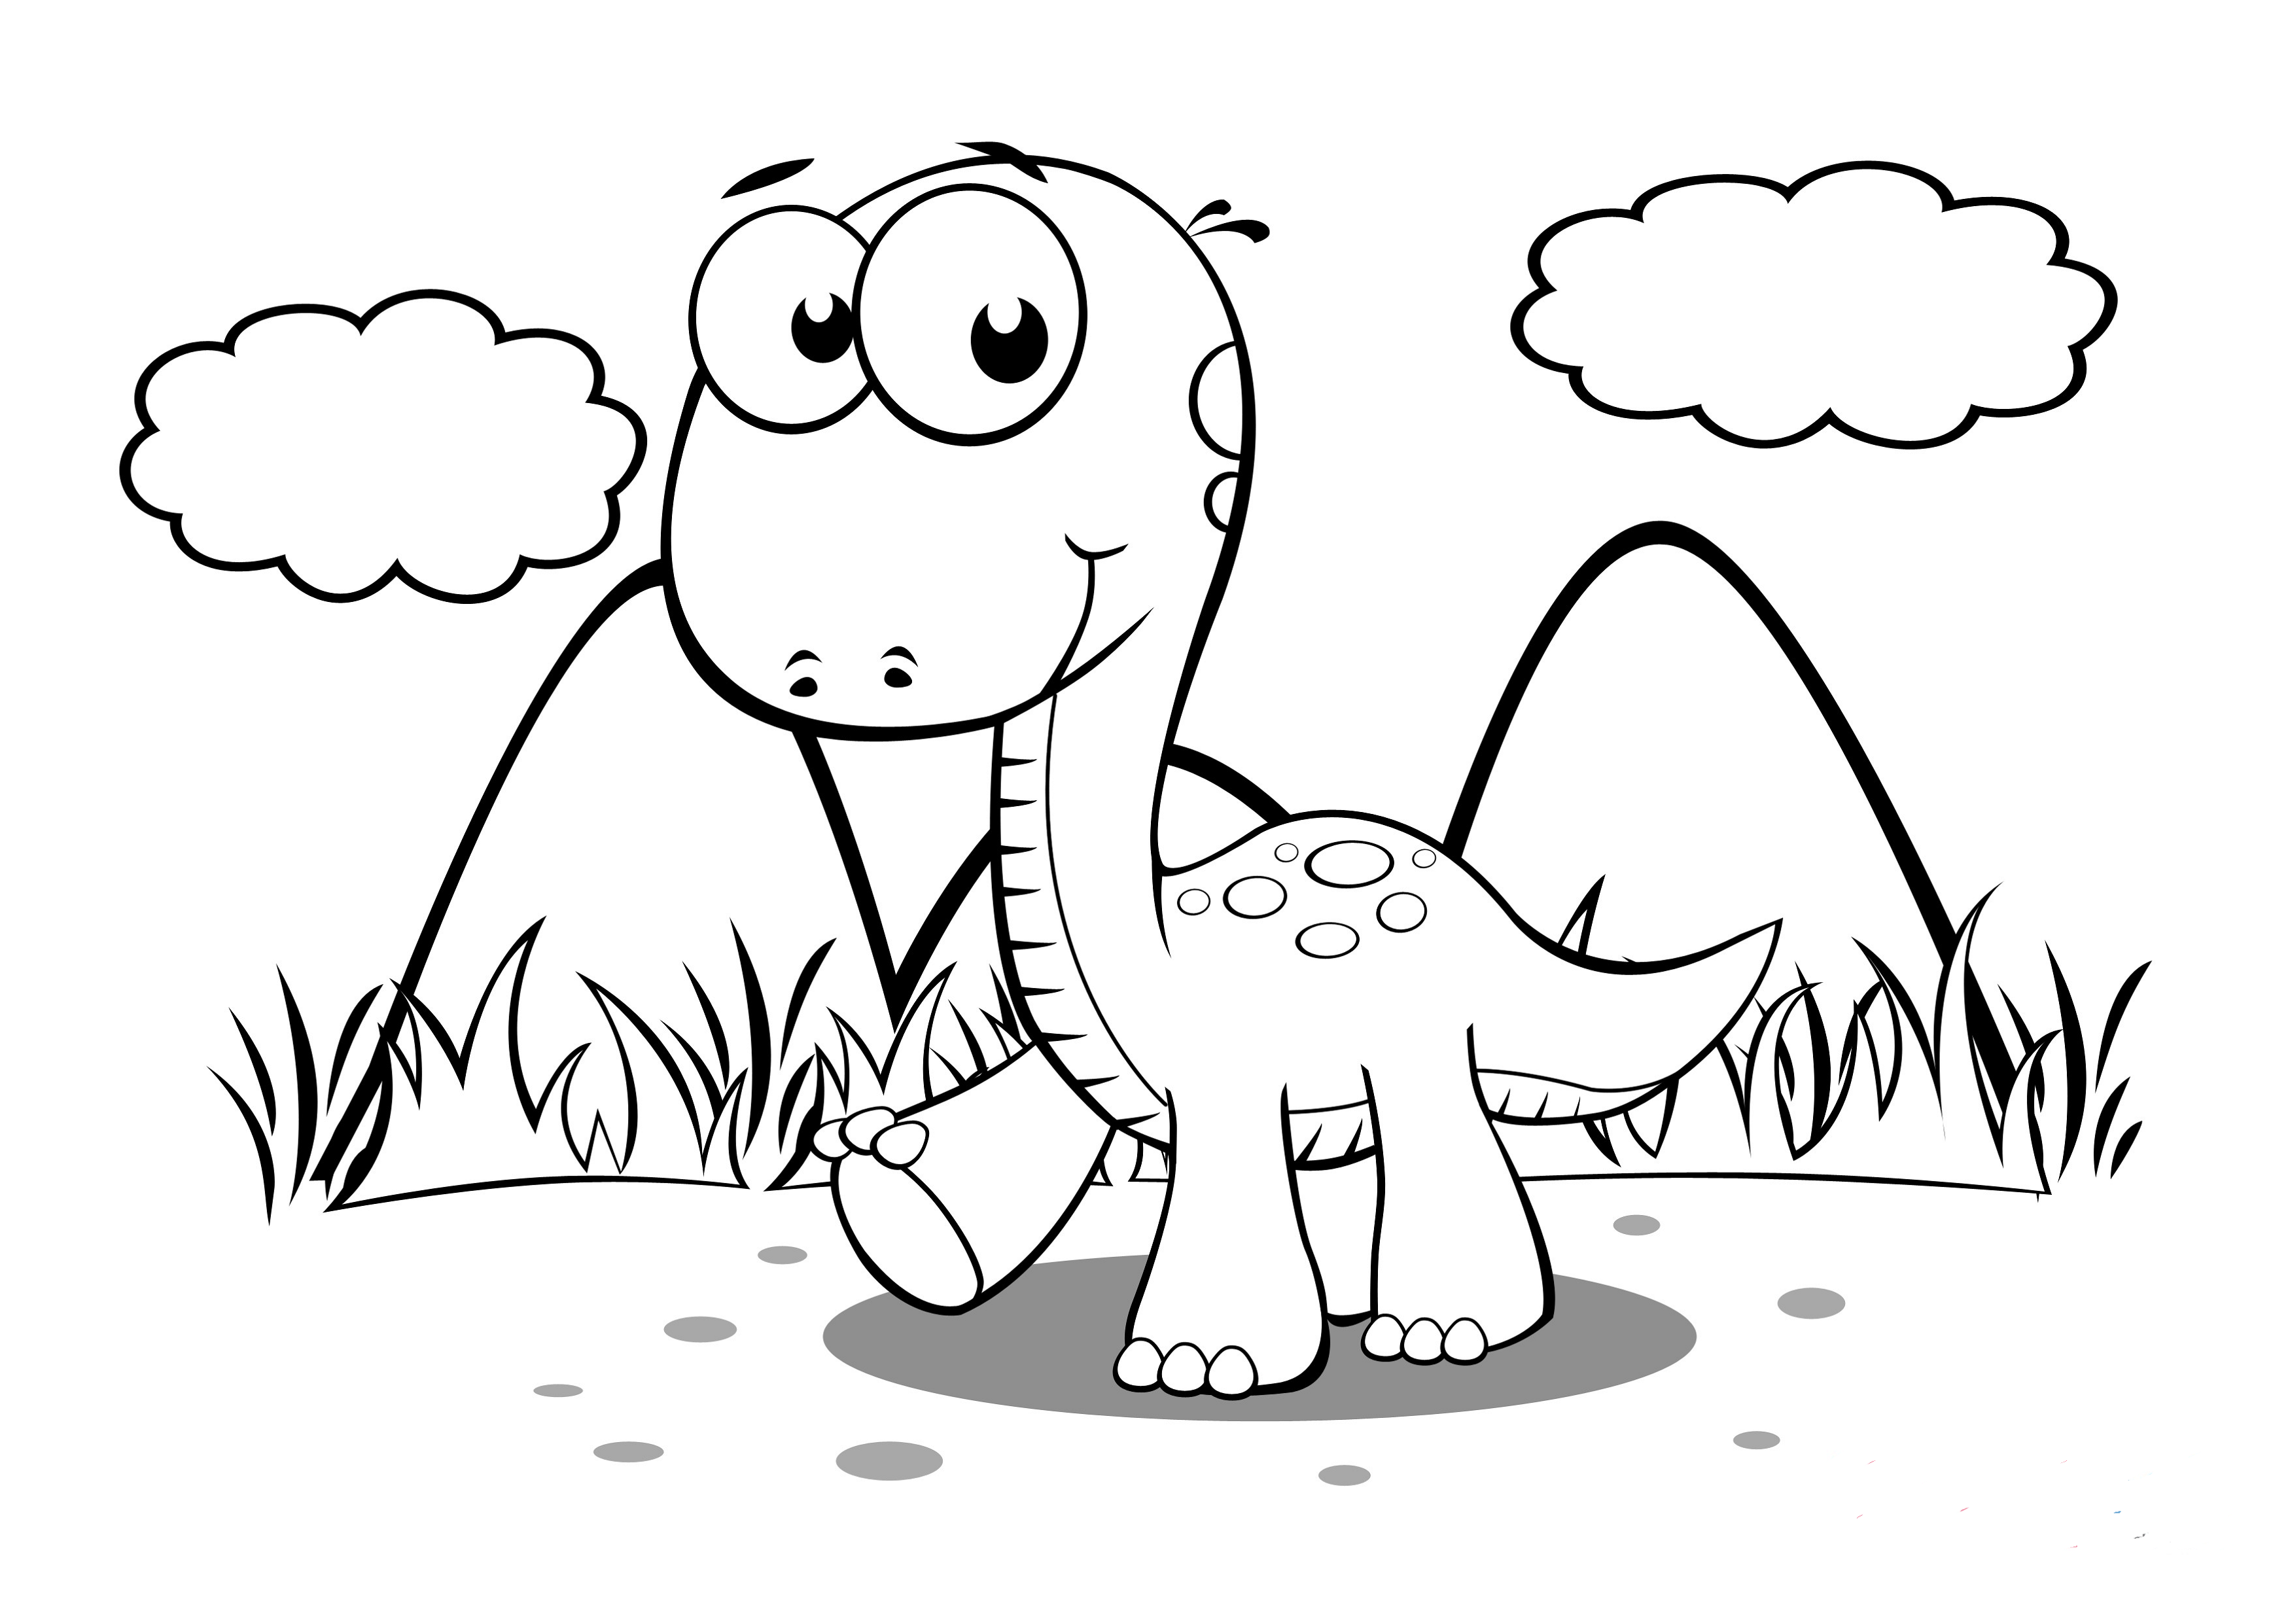 free dinosaur pictures baby dinosaur coloring pages for preschoolers activity pictures free dinosaur